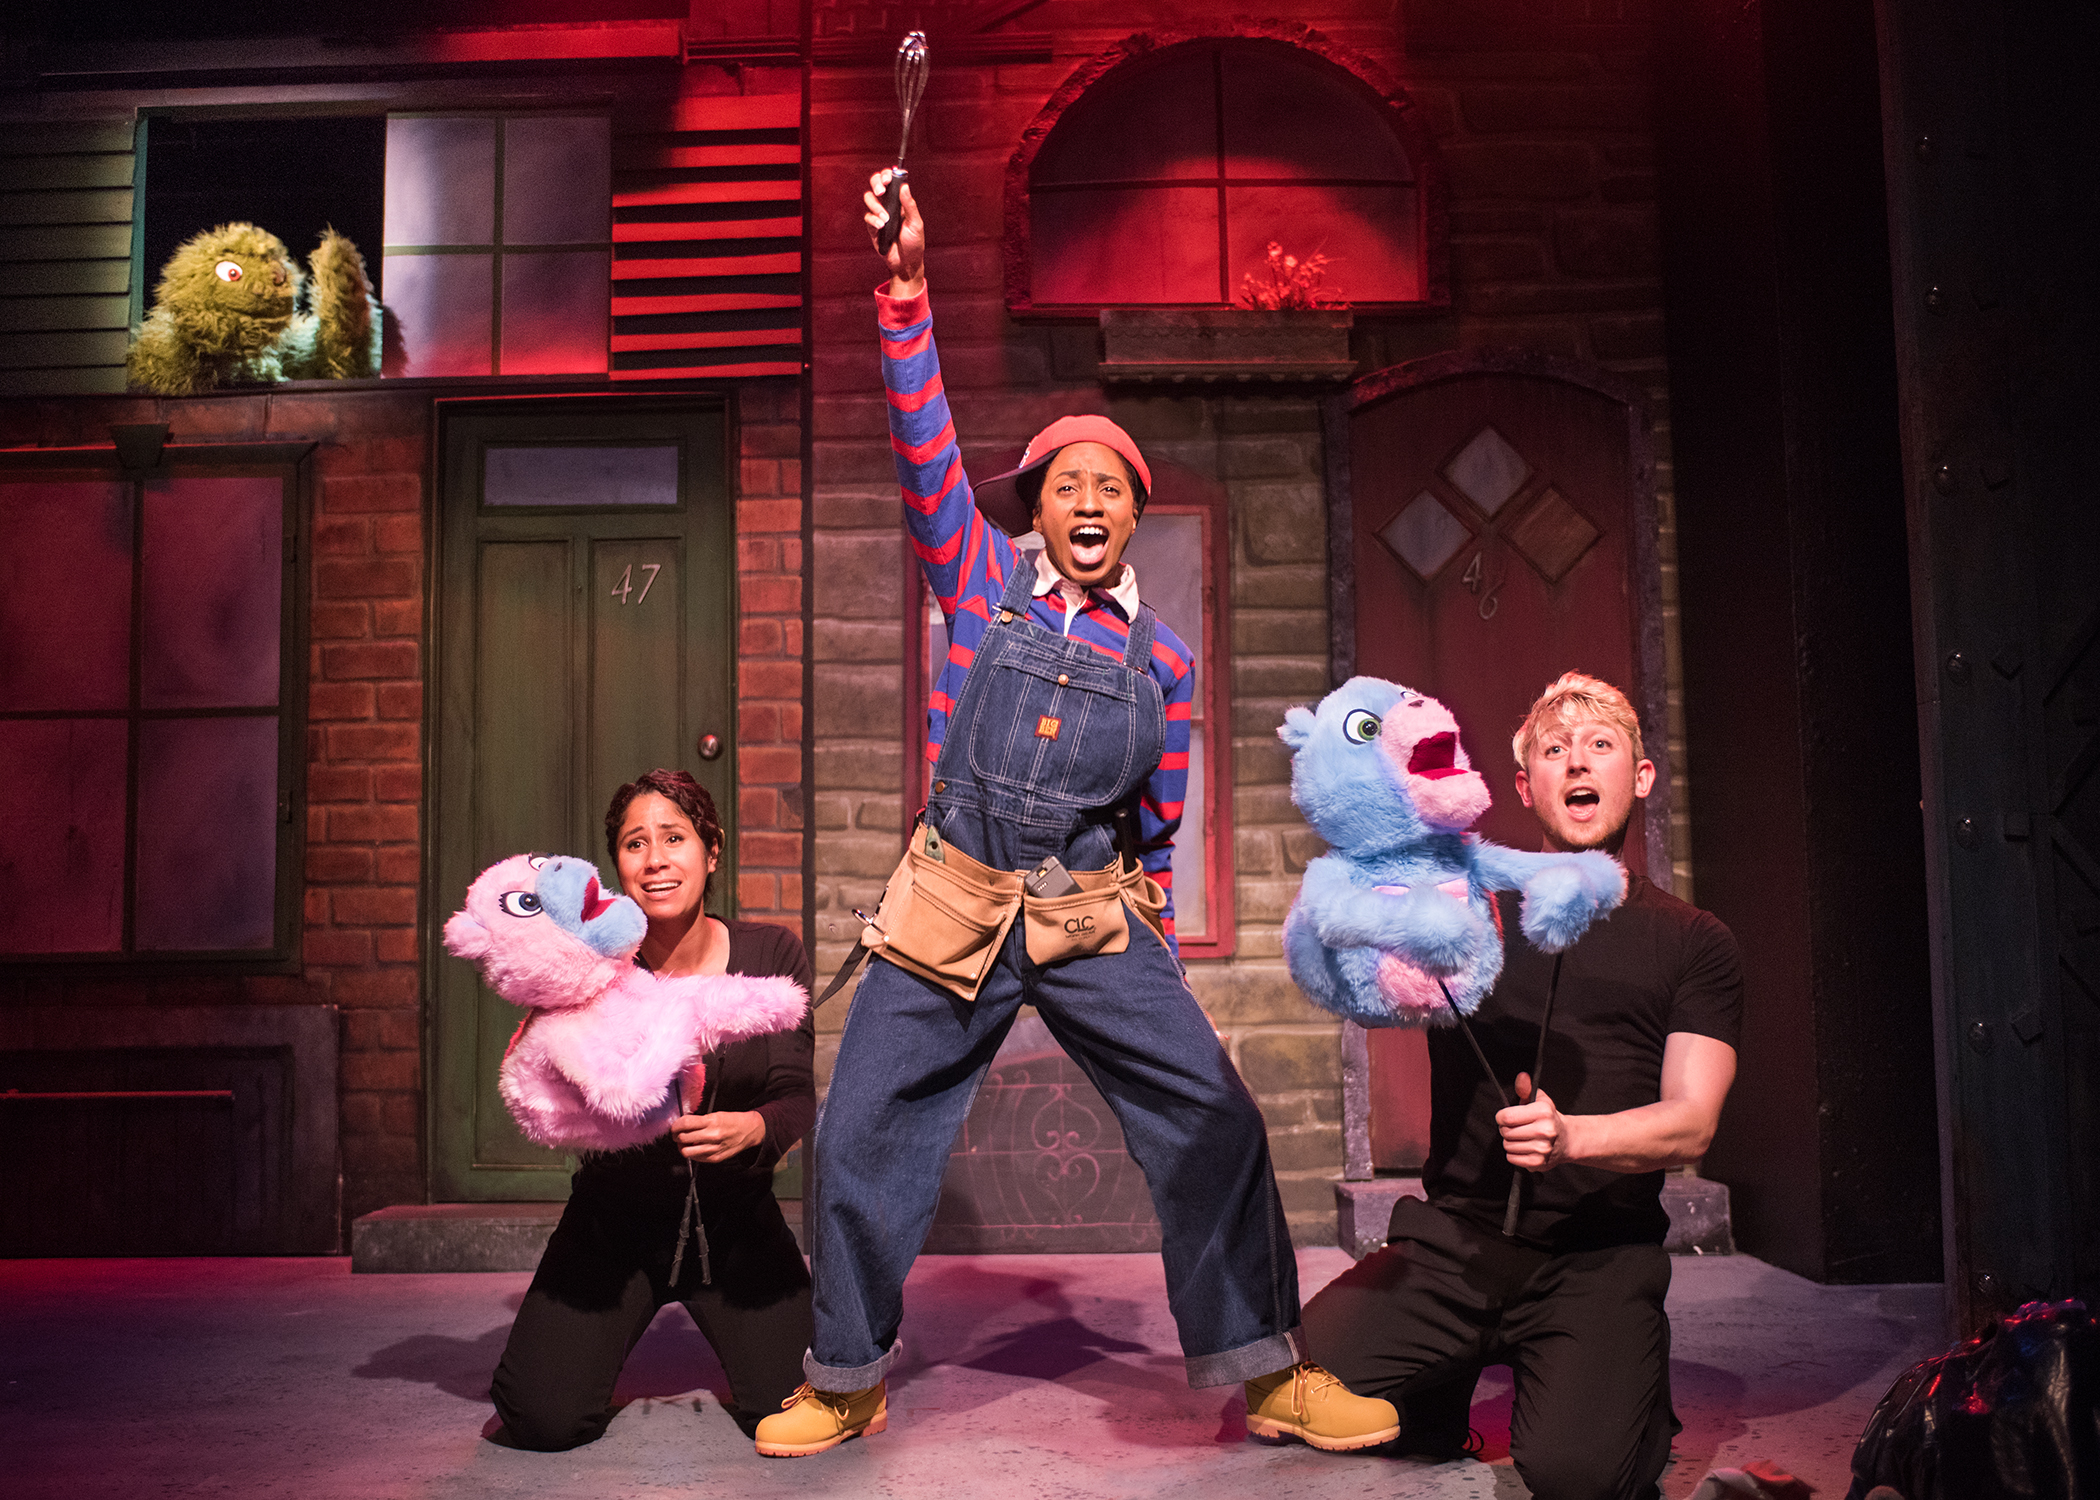 Trekkie Monster, The Bad Idea Bears (Alex Akin and Jake Gale) and Gary Coleman (Angel Adedokun) encourage the Avenue Q residents to be as loud as they want. Photo by Lois Tema.